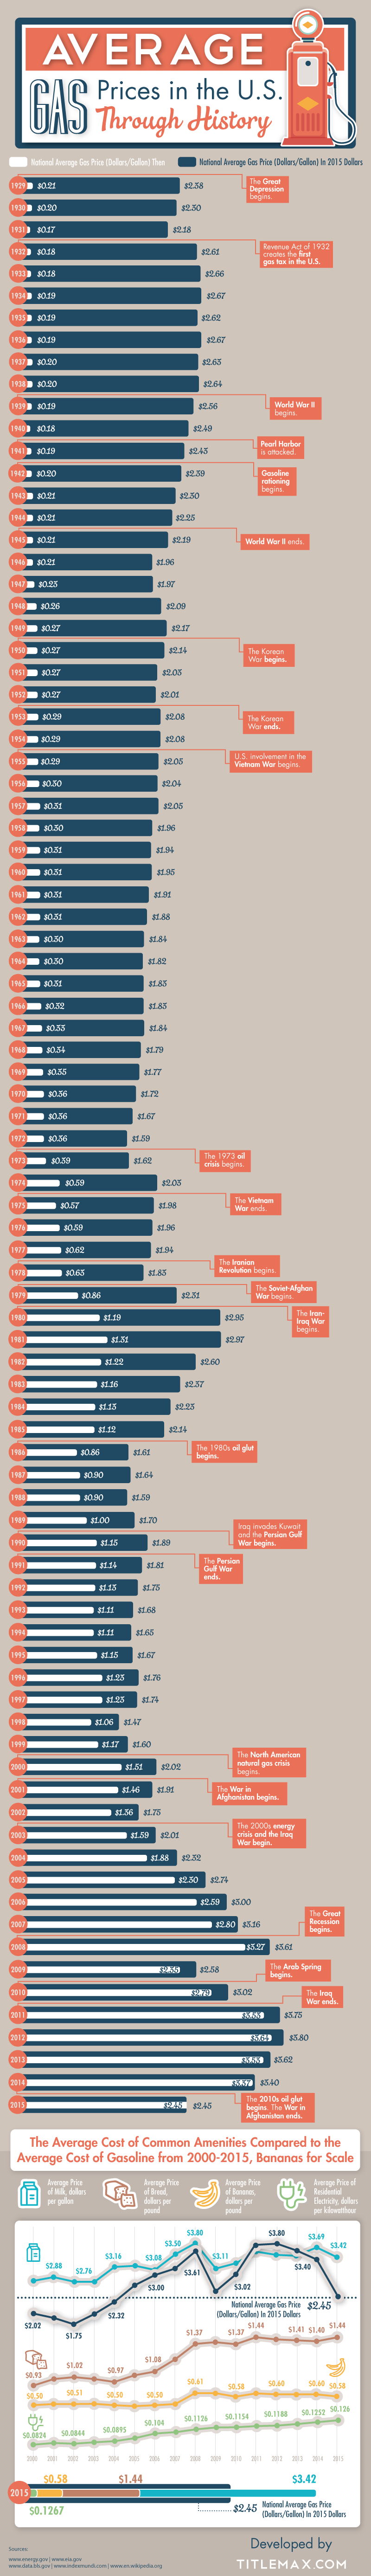 Average Gas Prices in the U.S. Through History